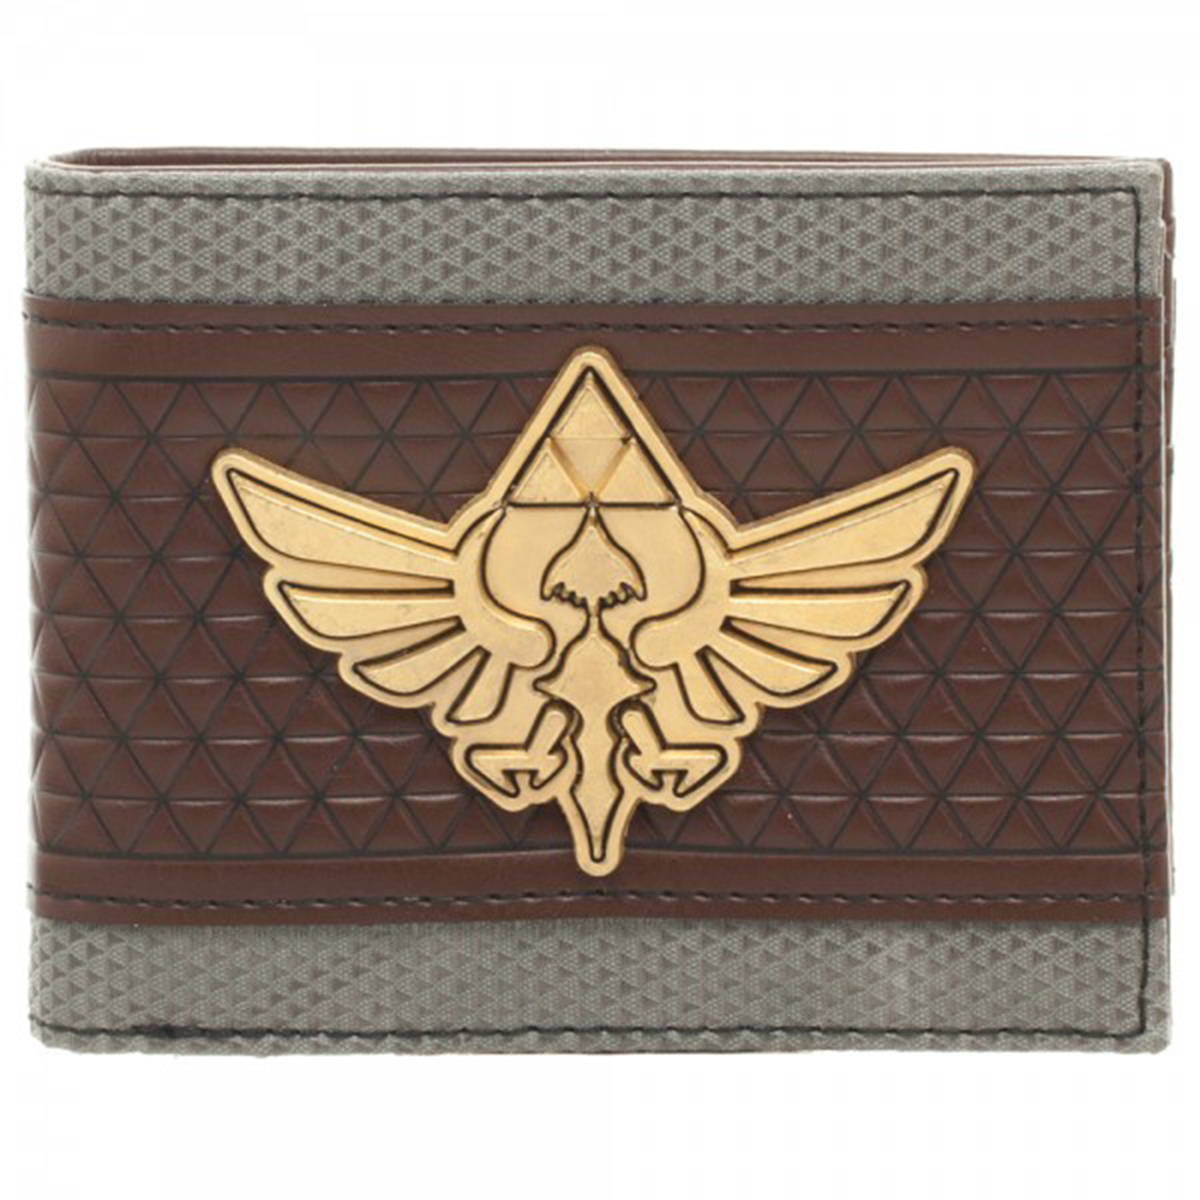 "The Legend of Zelda ""Wingcrest"" Bi-Fold Wallet"